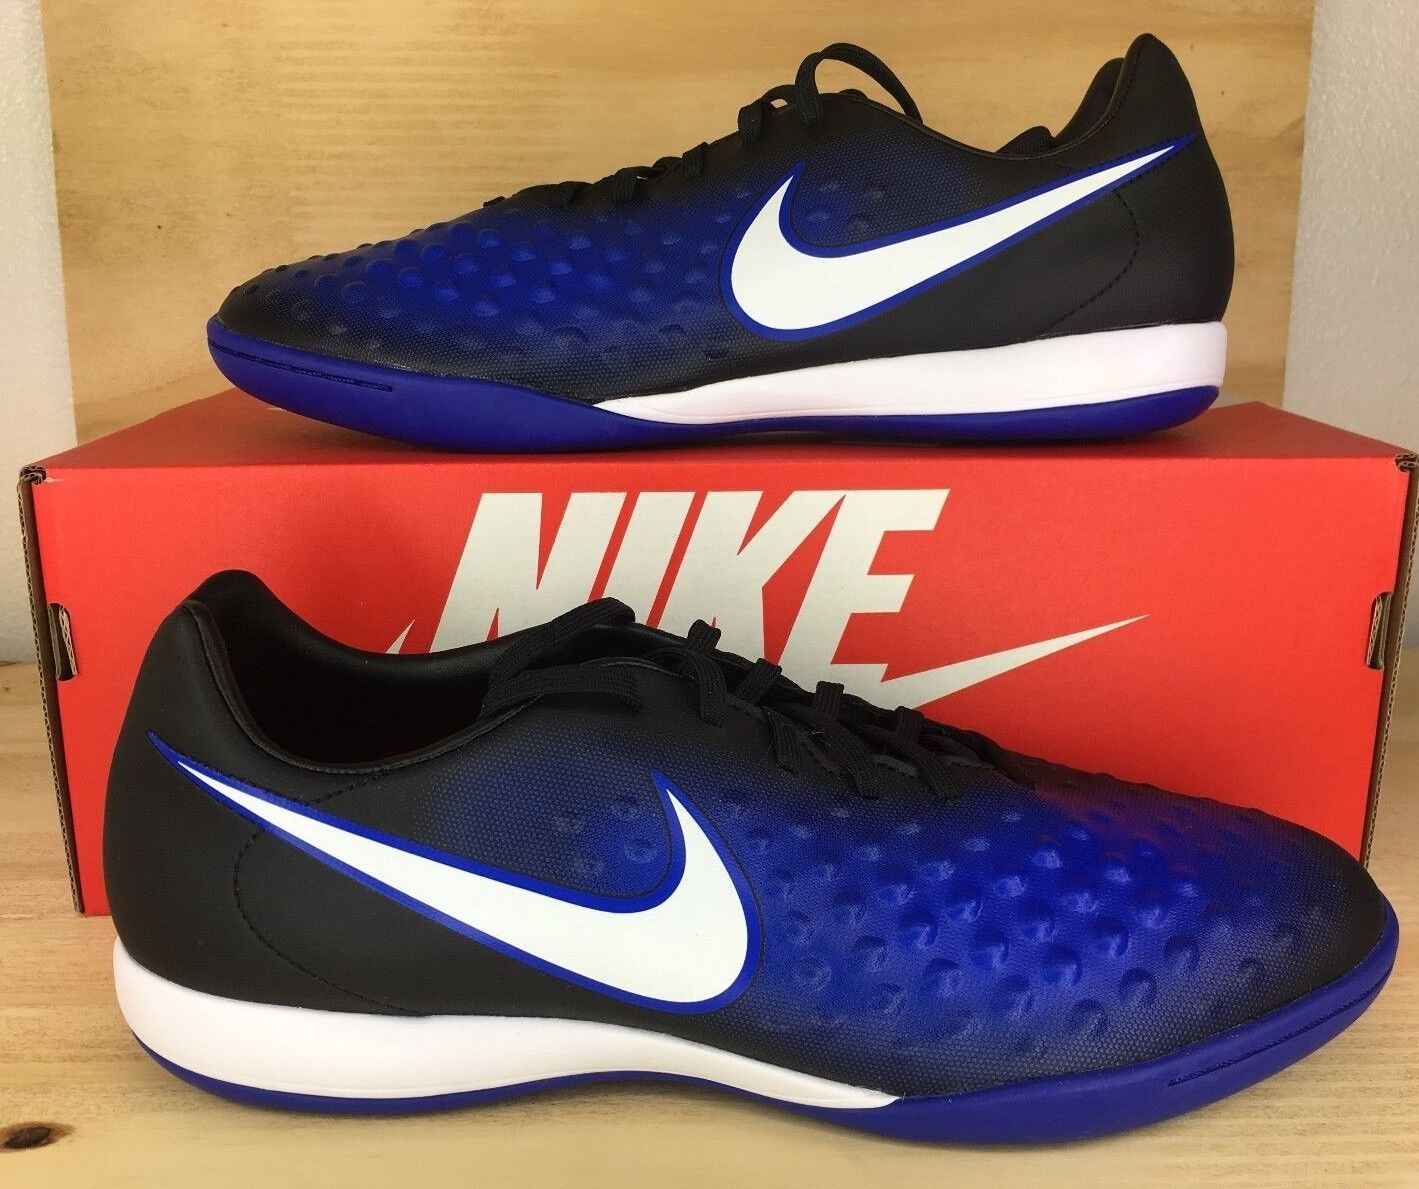 Nike Magista X Onda II IC Mens Indoor Soccer Cleats White Blue 844413-015 Sz 9.5